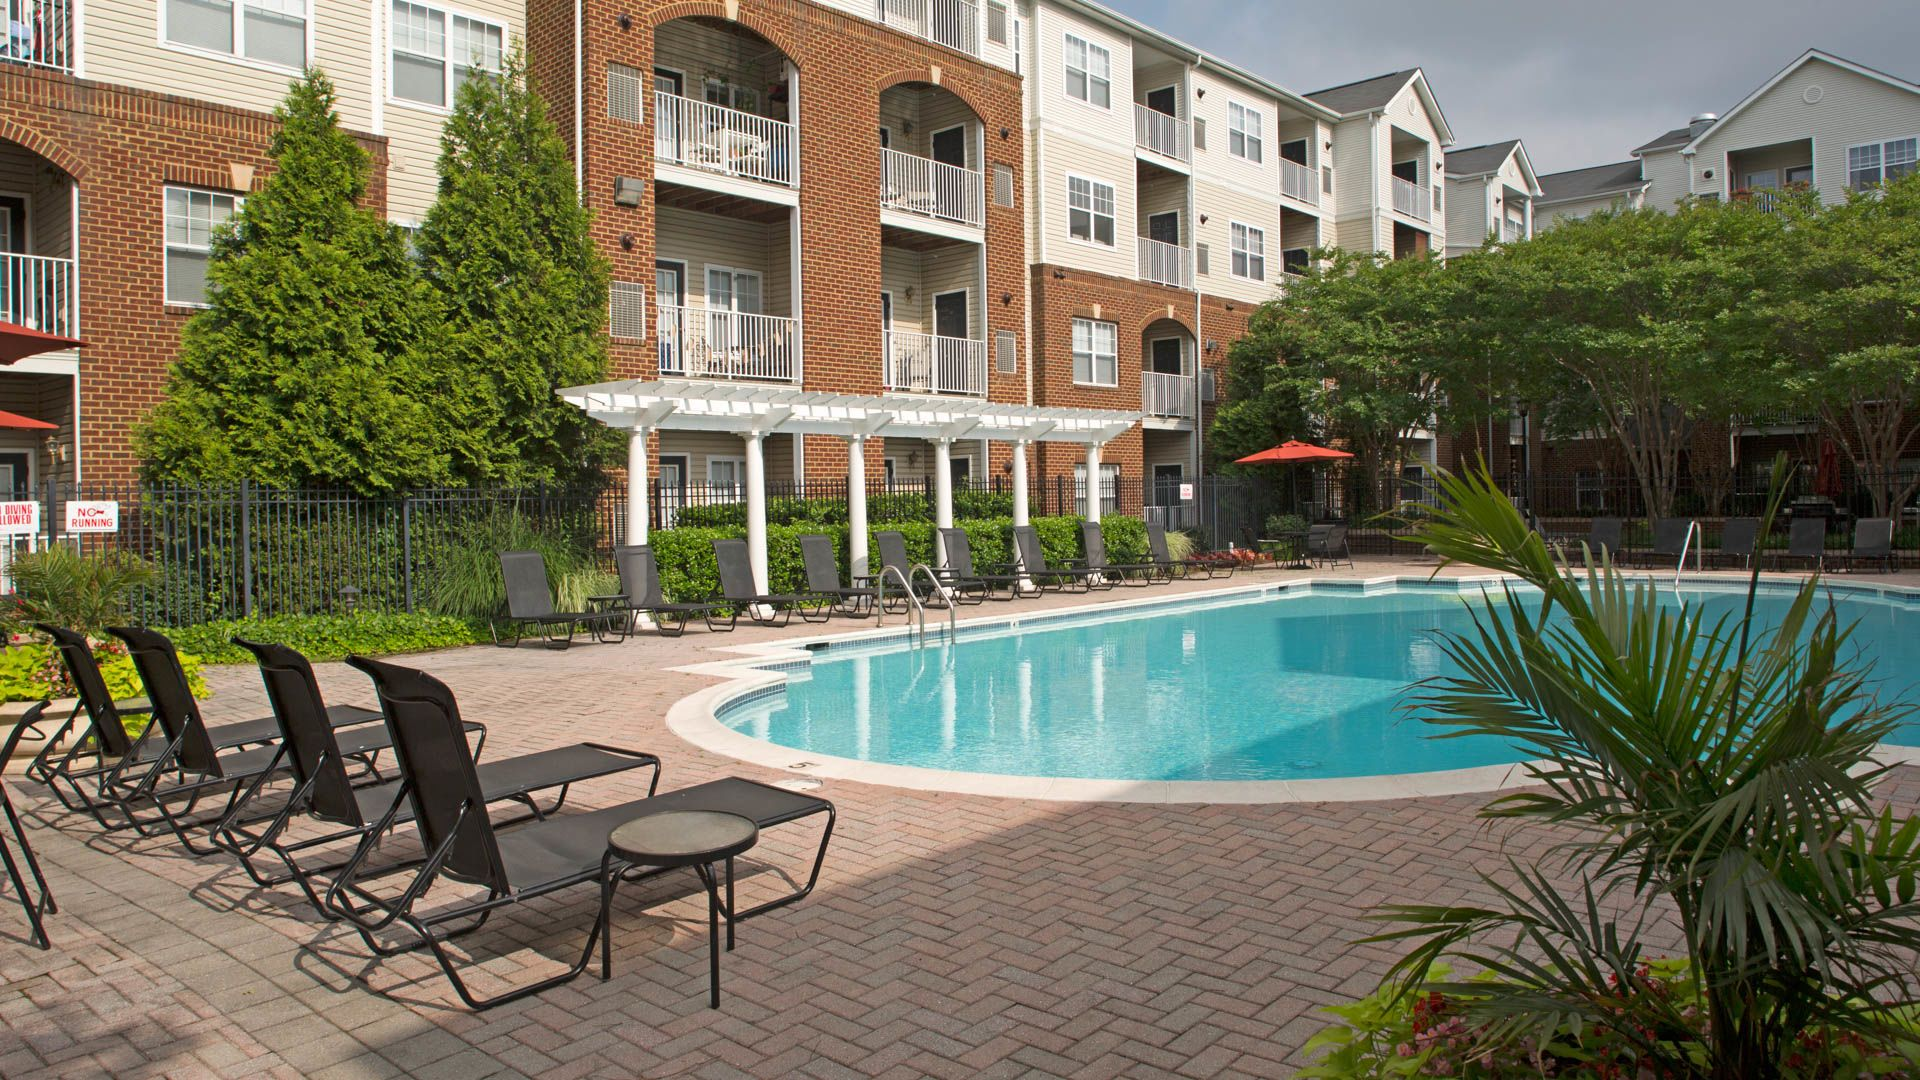 Reserve at potomac yard apartments in alexandria 3700 jefferson davis hwy Swimming pools in alexandria va